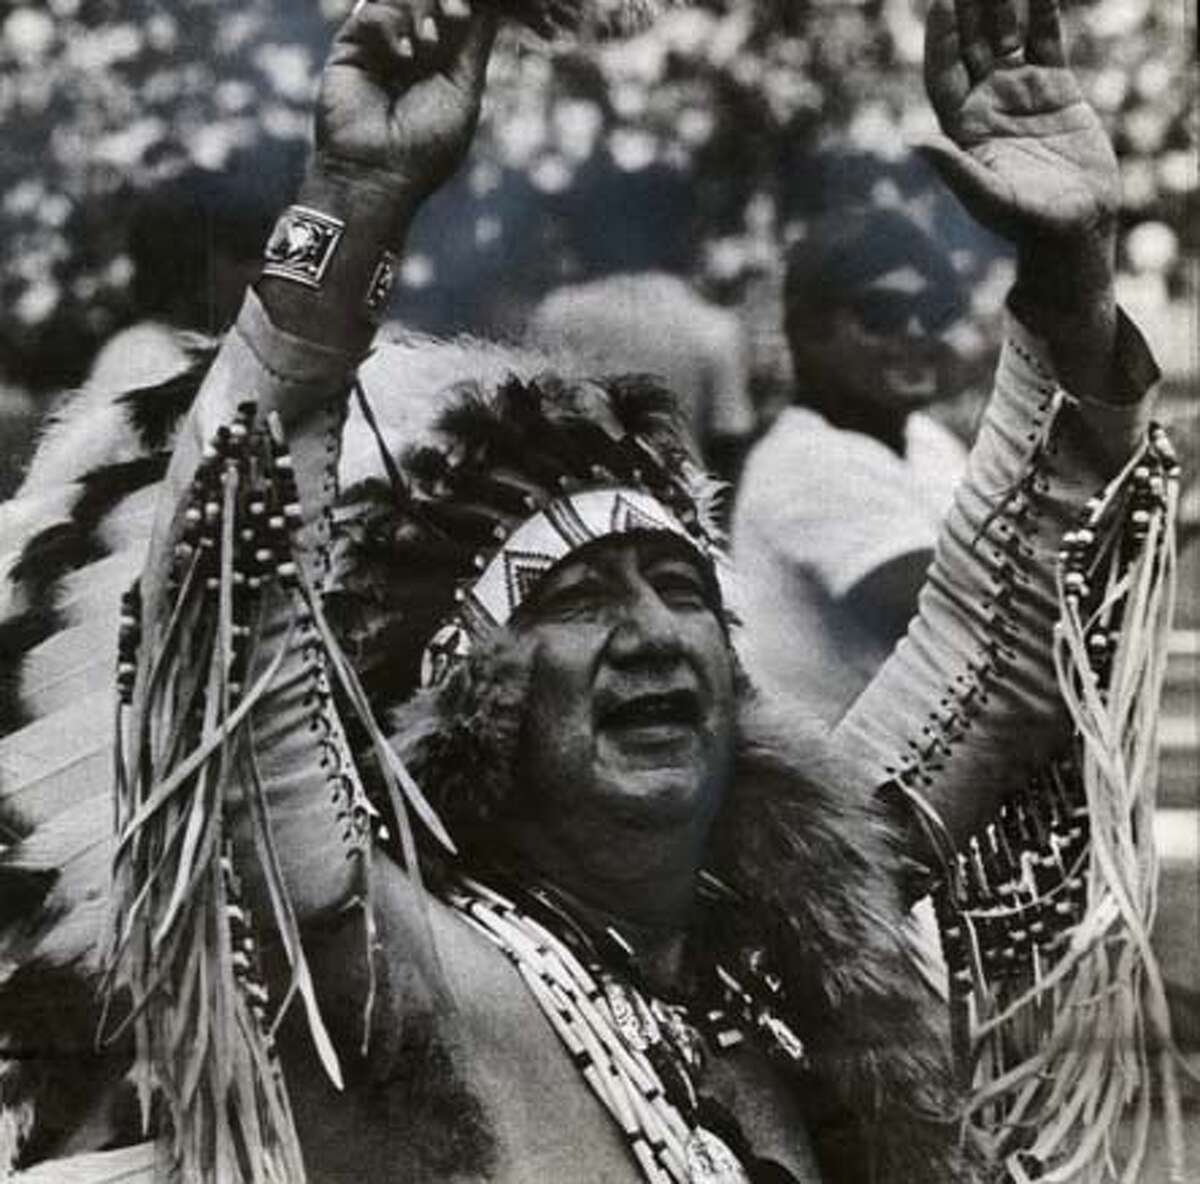 Timm Johnson, aka Chief Lightfoot cheers at a Stanford-UCLA football game Oct 6, 1979. The indian mascot had been discountinued by Stanford in 1972. This was a rare return performance by Johnson.